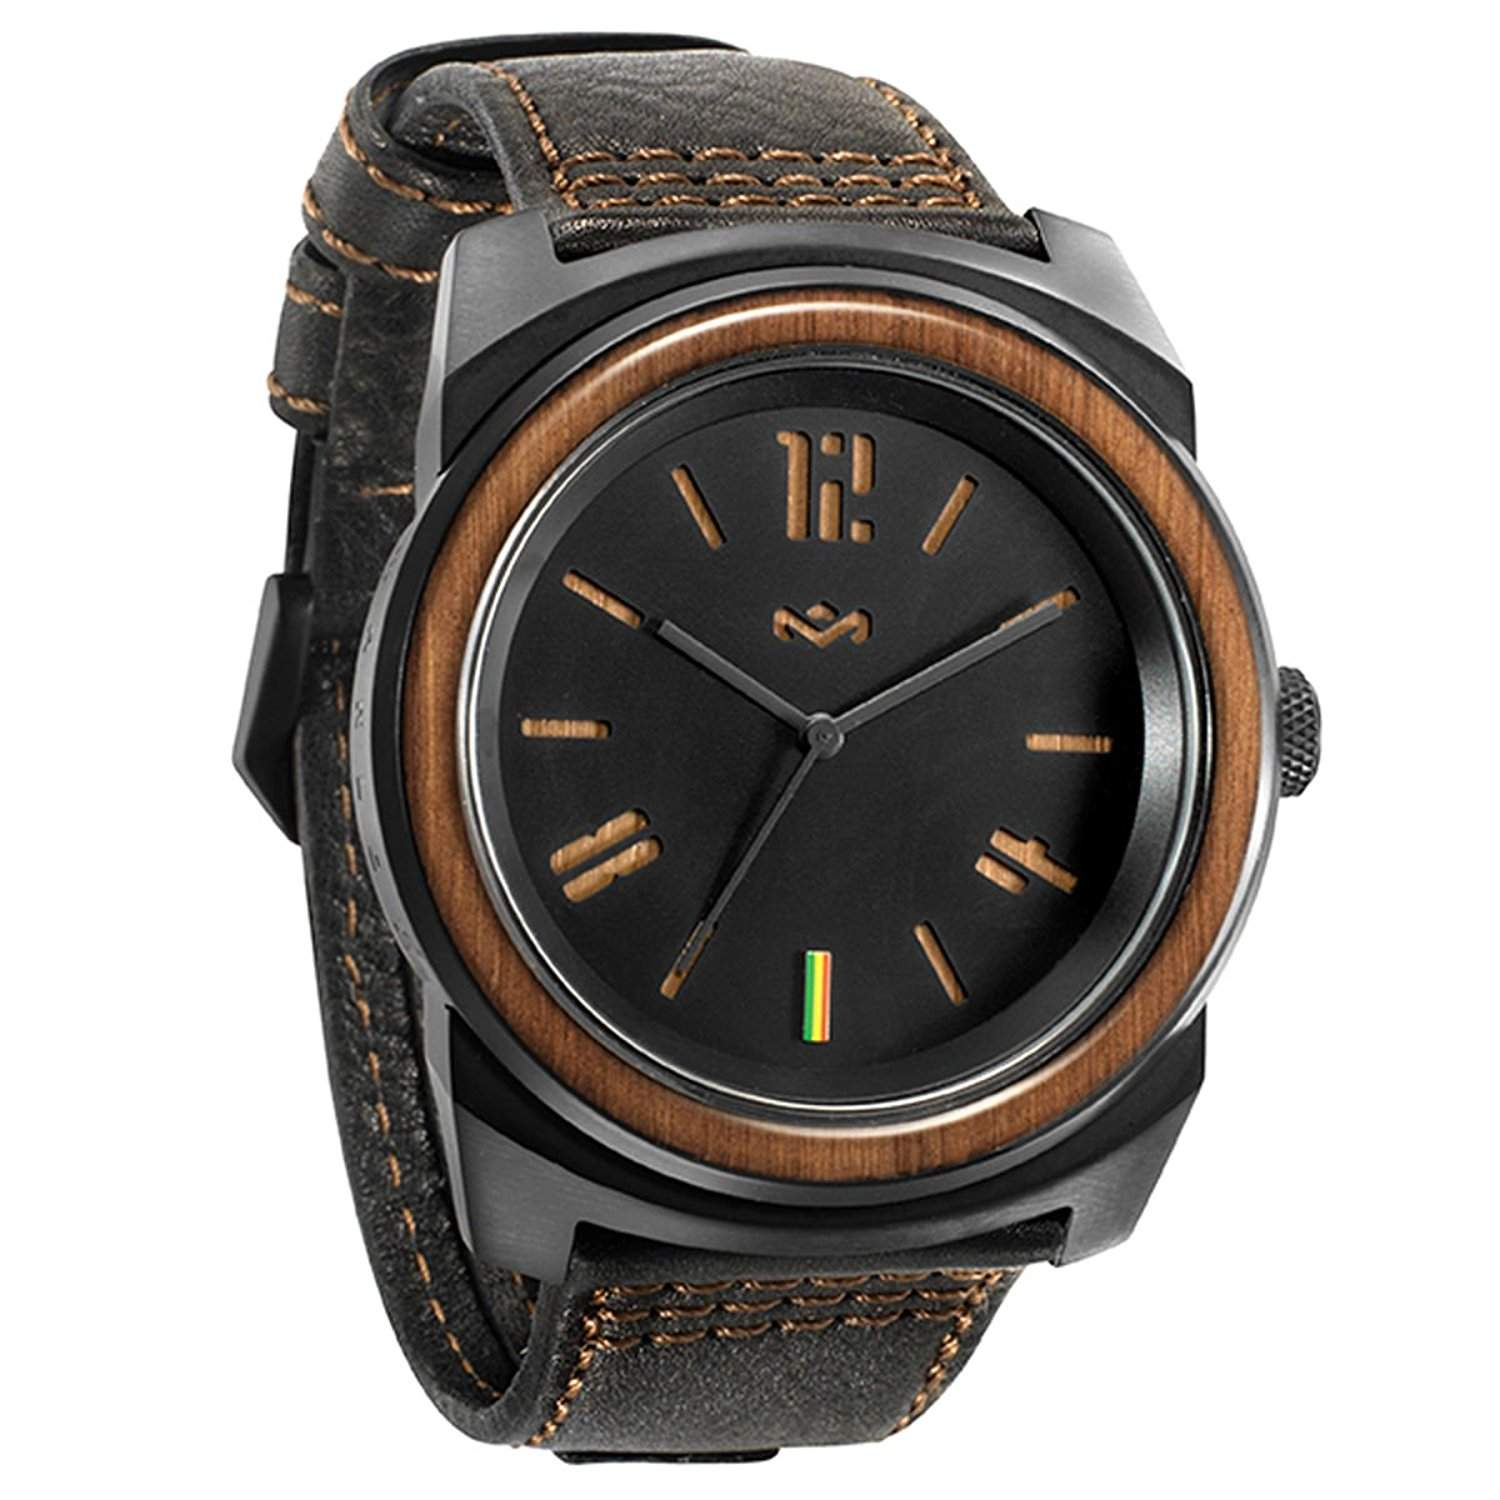 Marley Capsule Leather Watch - Midnight